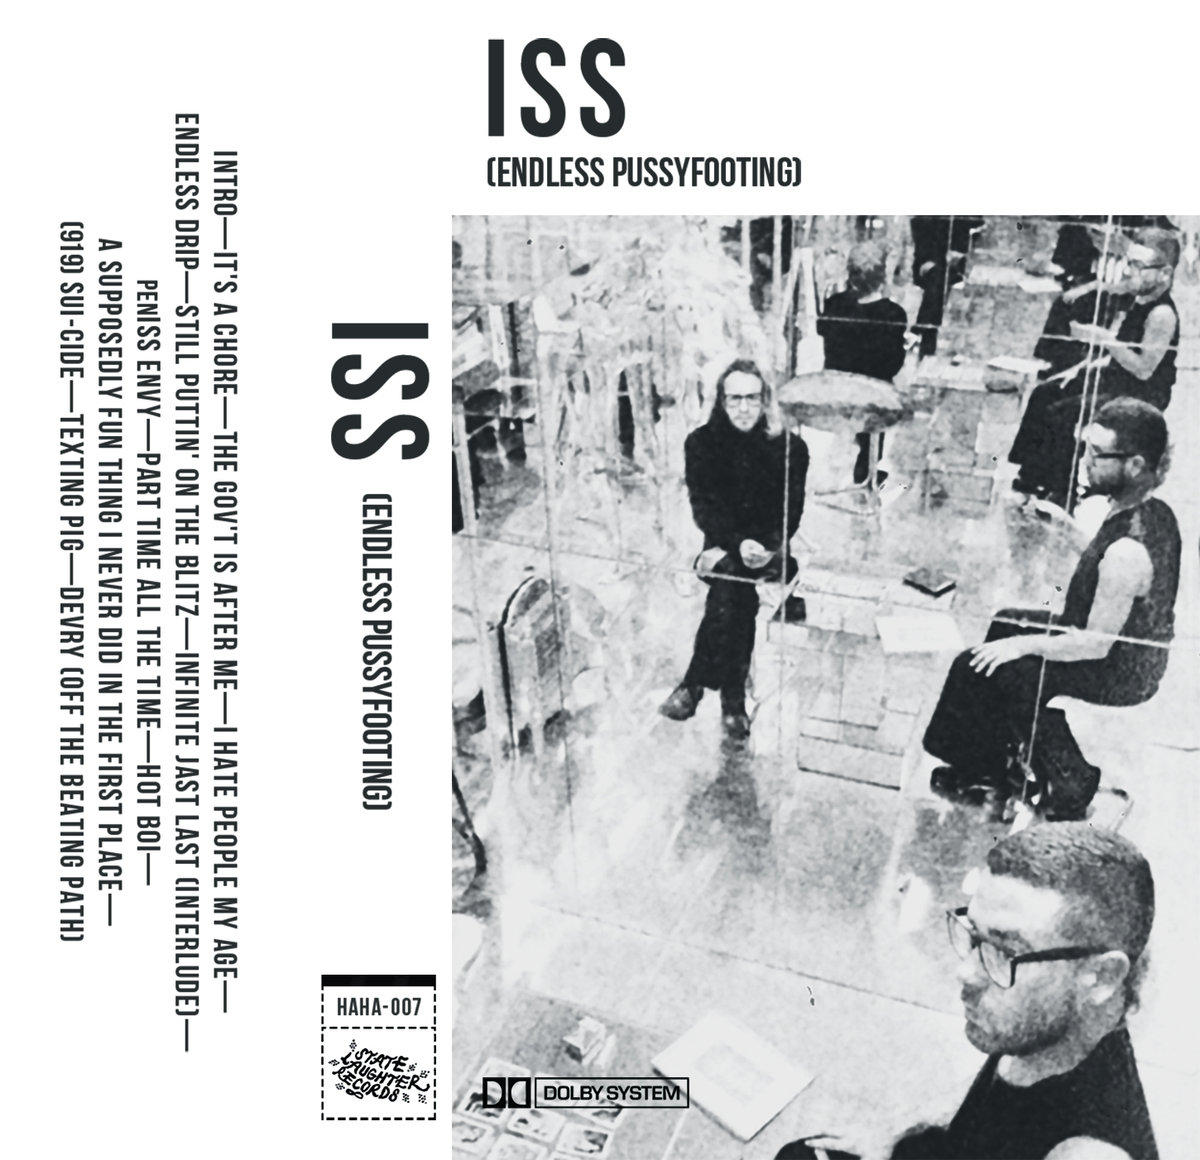 ISS (Endless Pussyfooting)